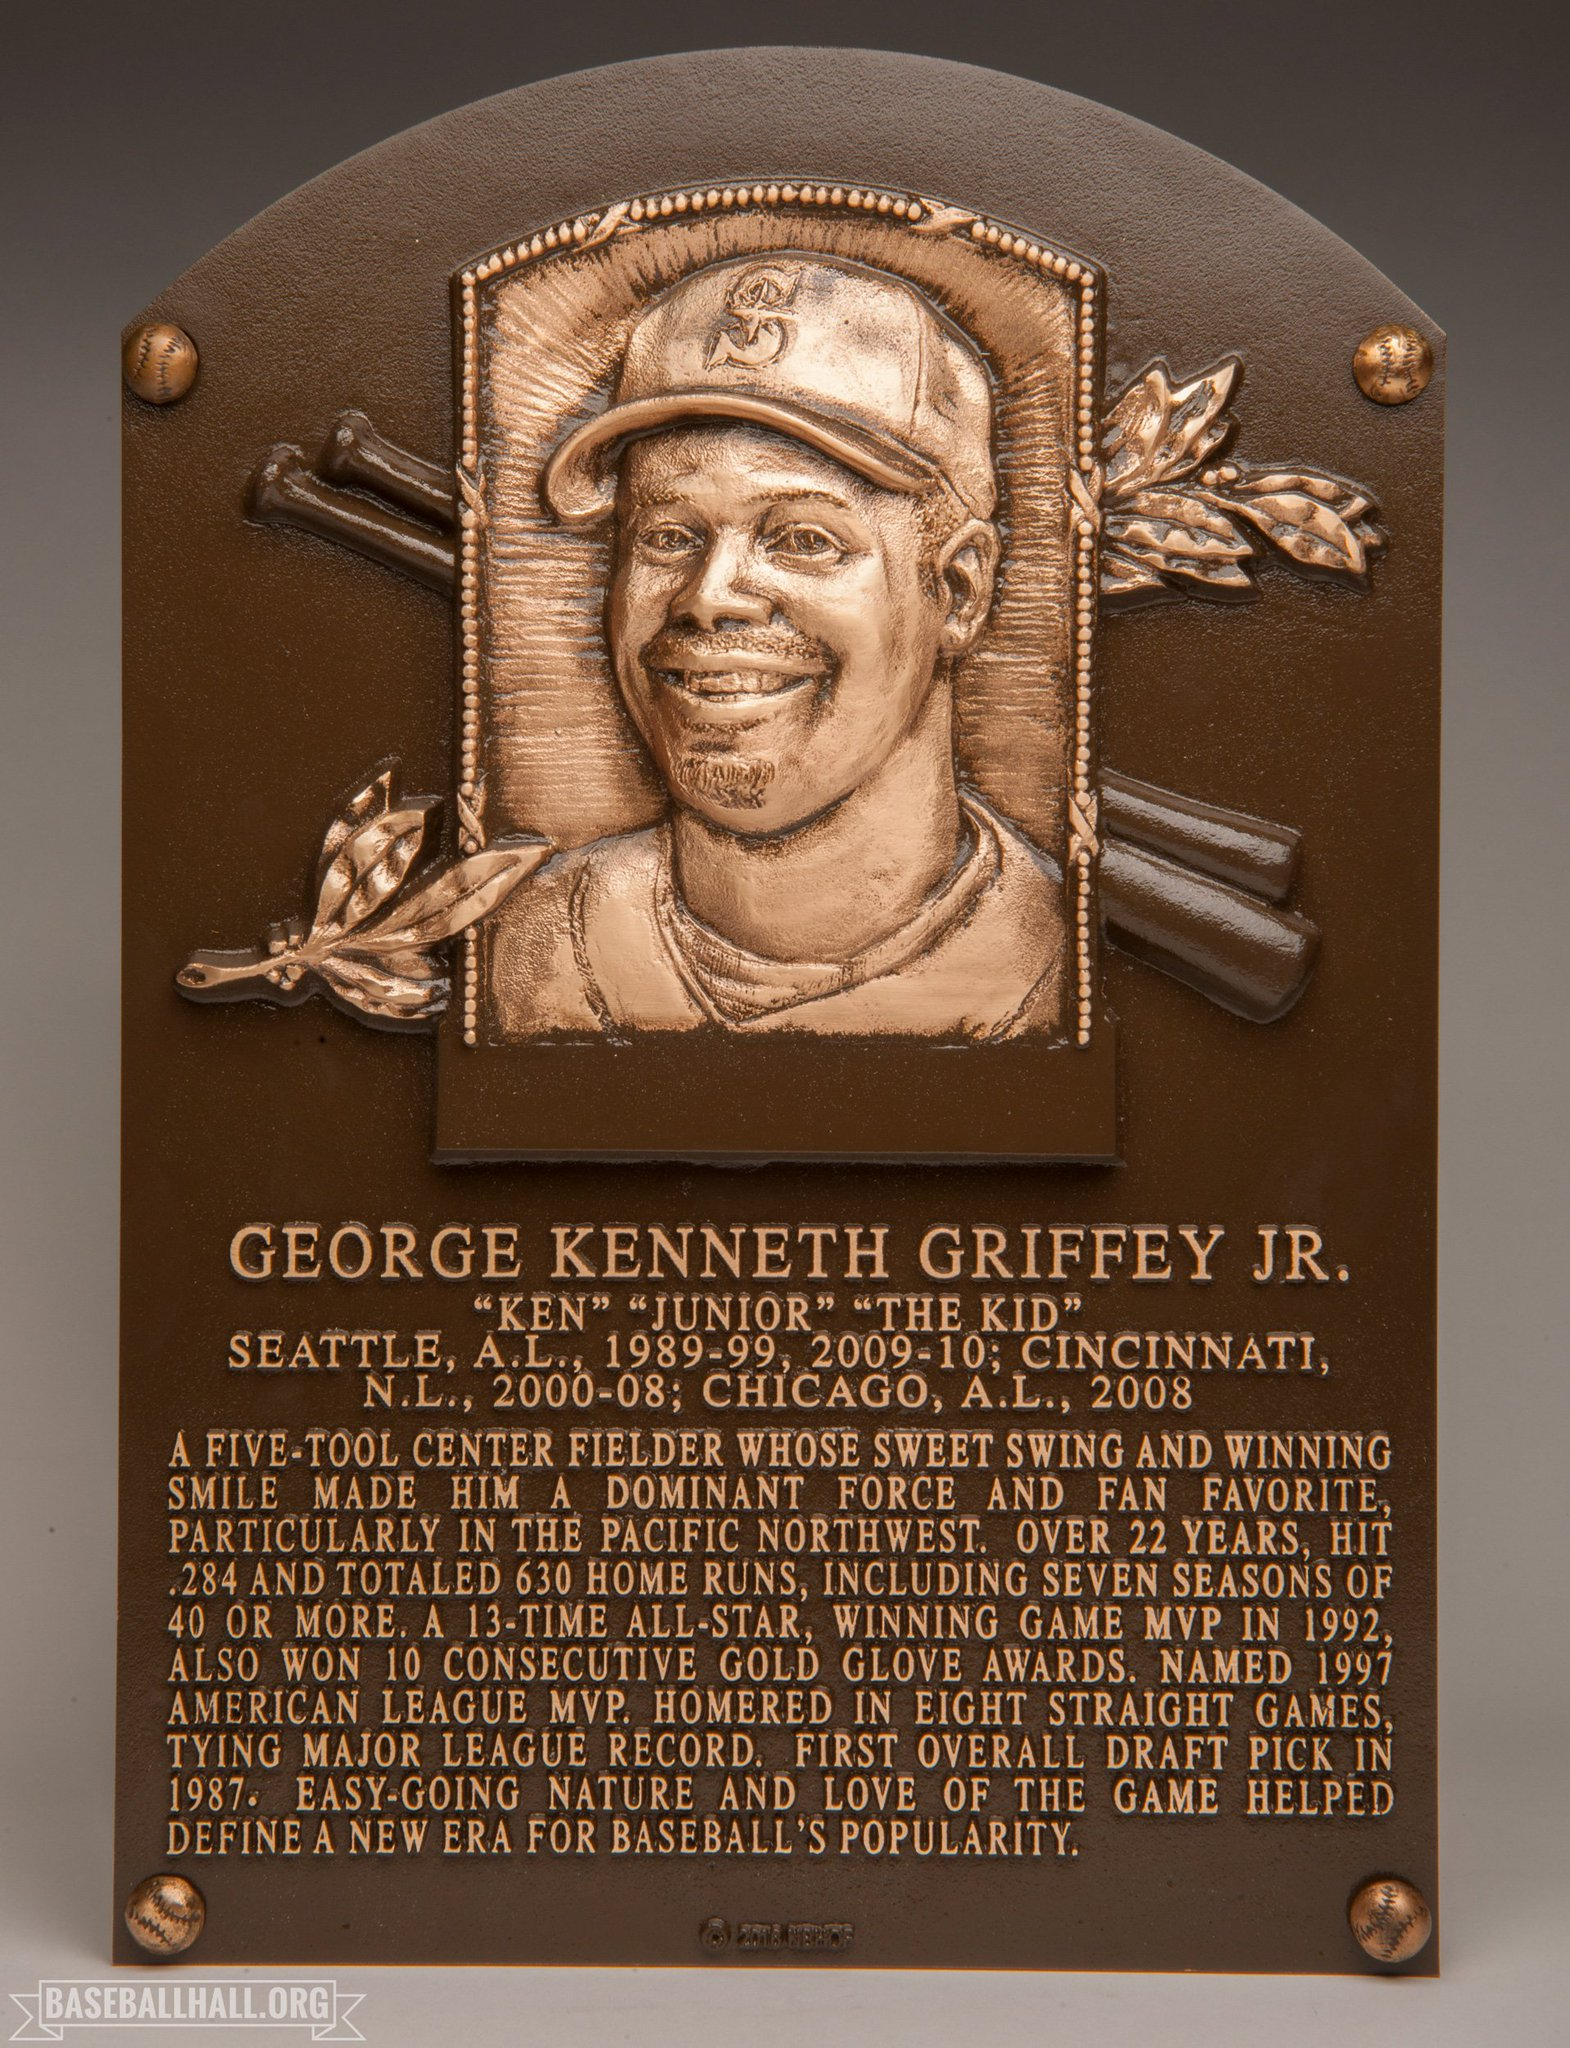 Thumbnail for Ken Griffey Junior inducted into Baseball Hall of Fame